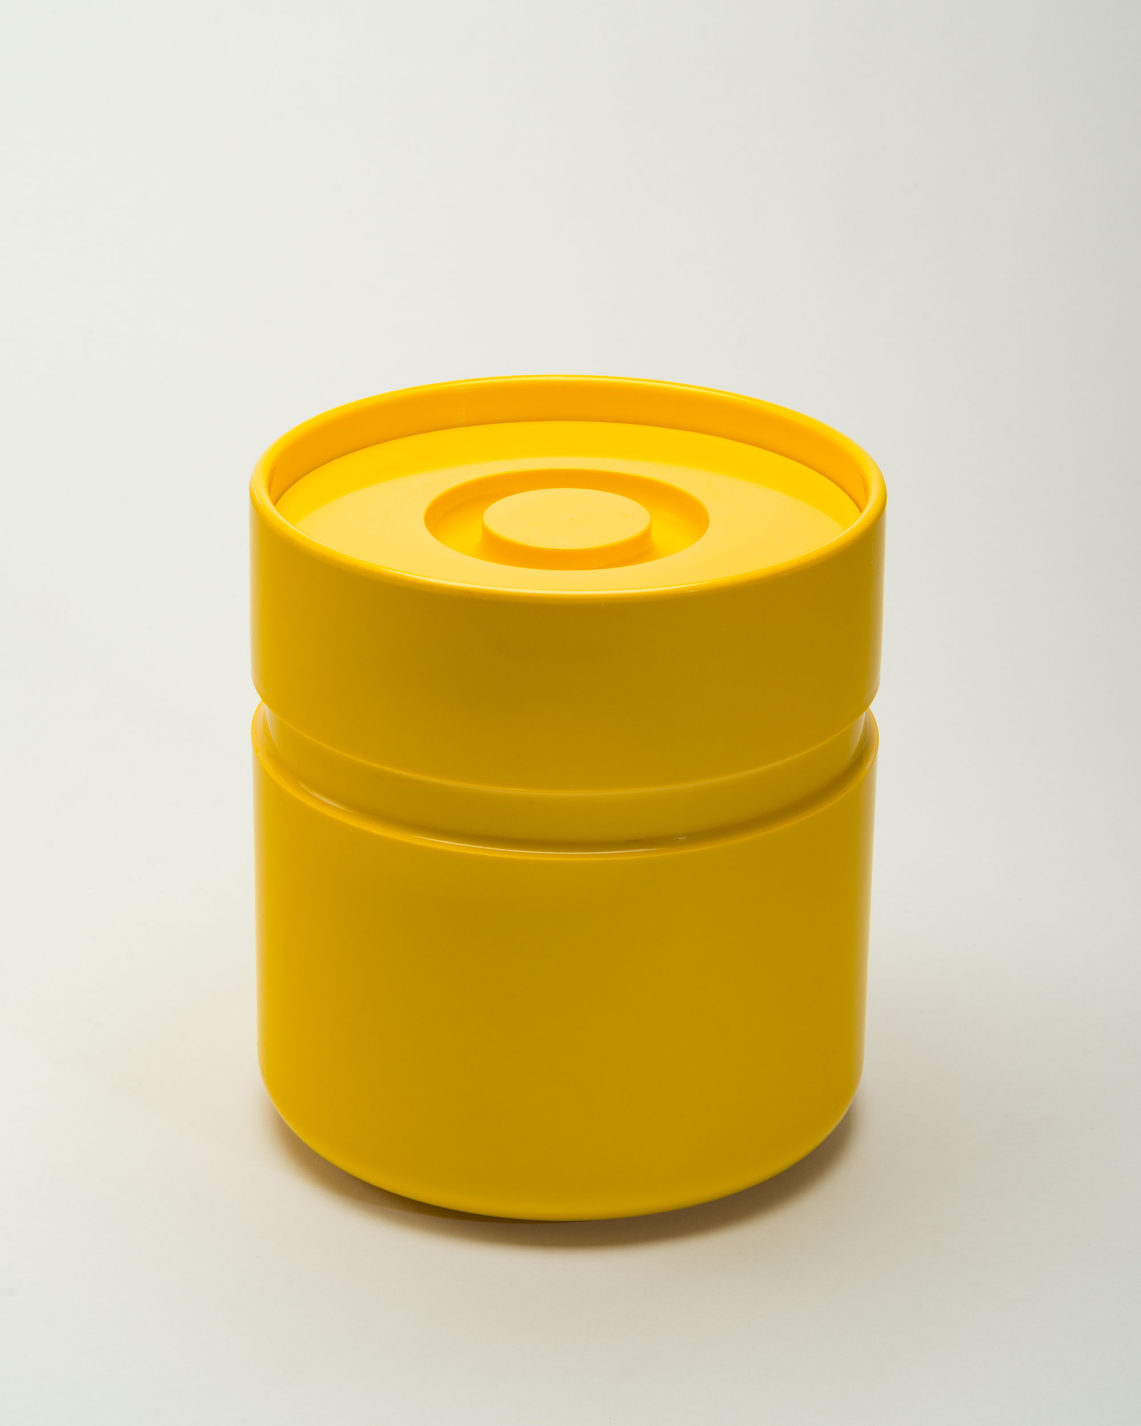 Cylindrical yellow ice bucket with an indented ring around it and a recessed circular handle in the lid.